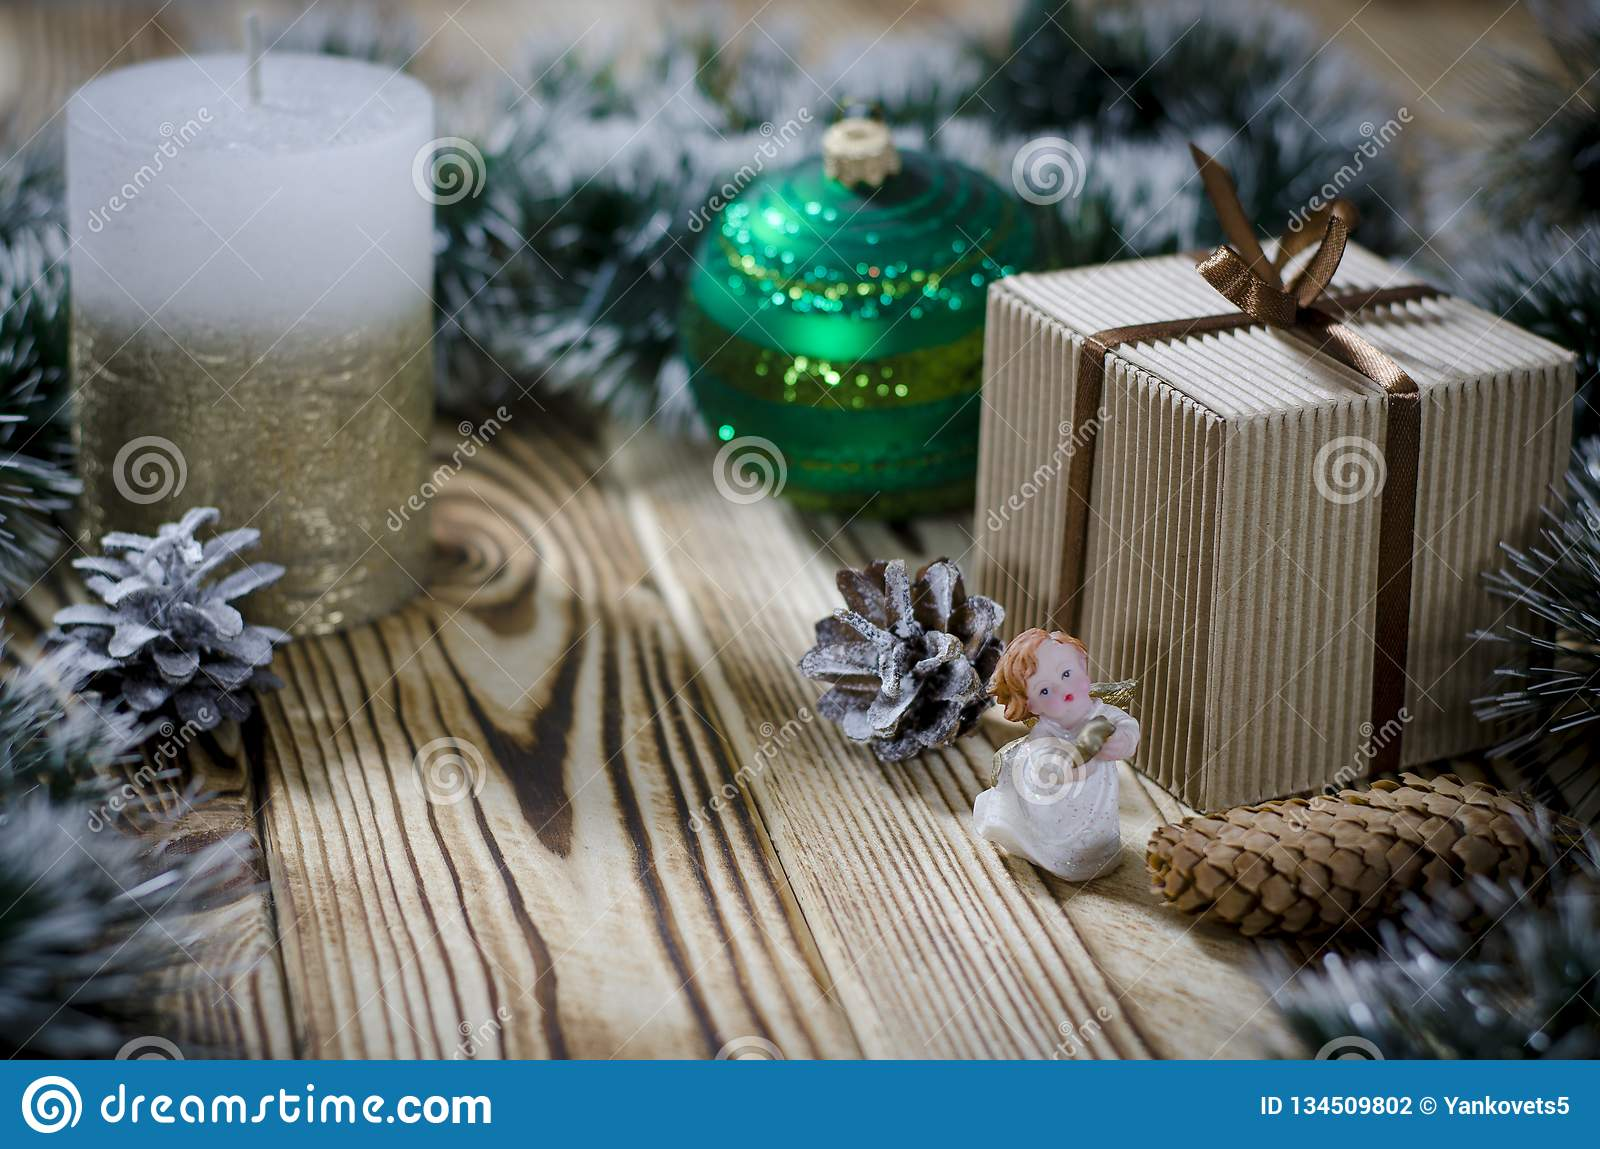 A gift lays on a wooden table next to a candle, cones and an angel against the background of Christmas decorations